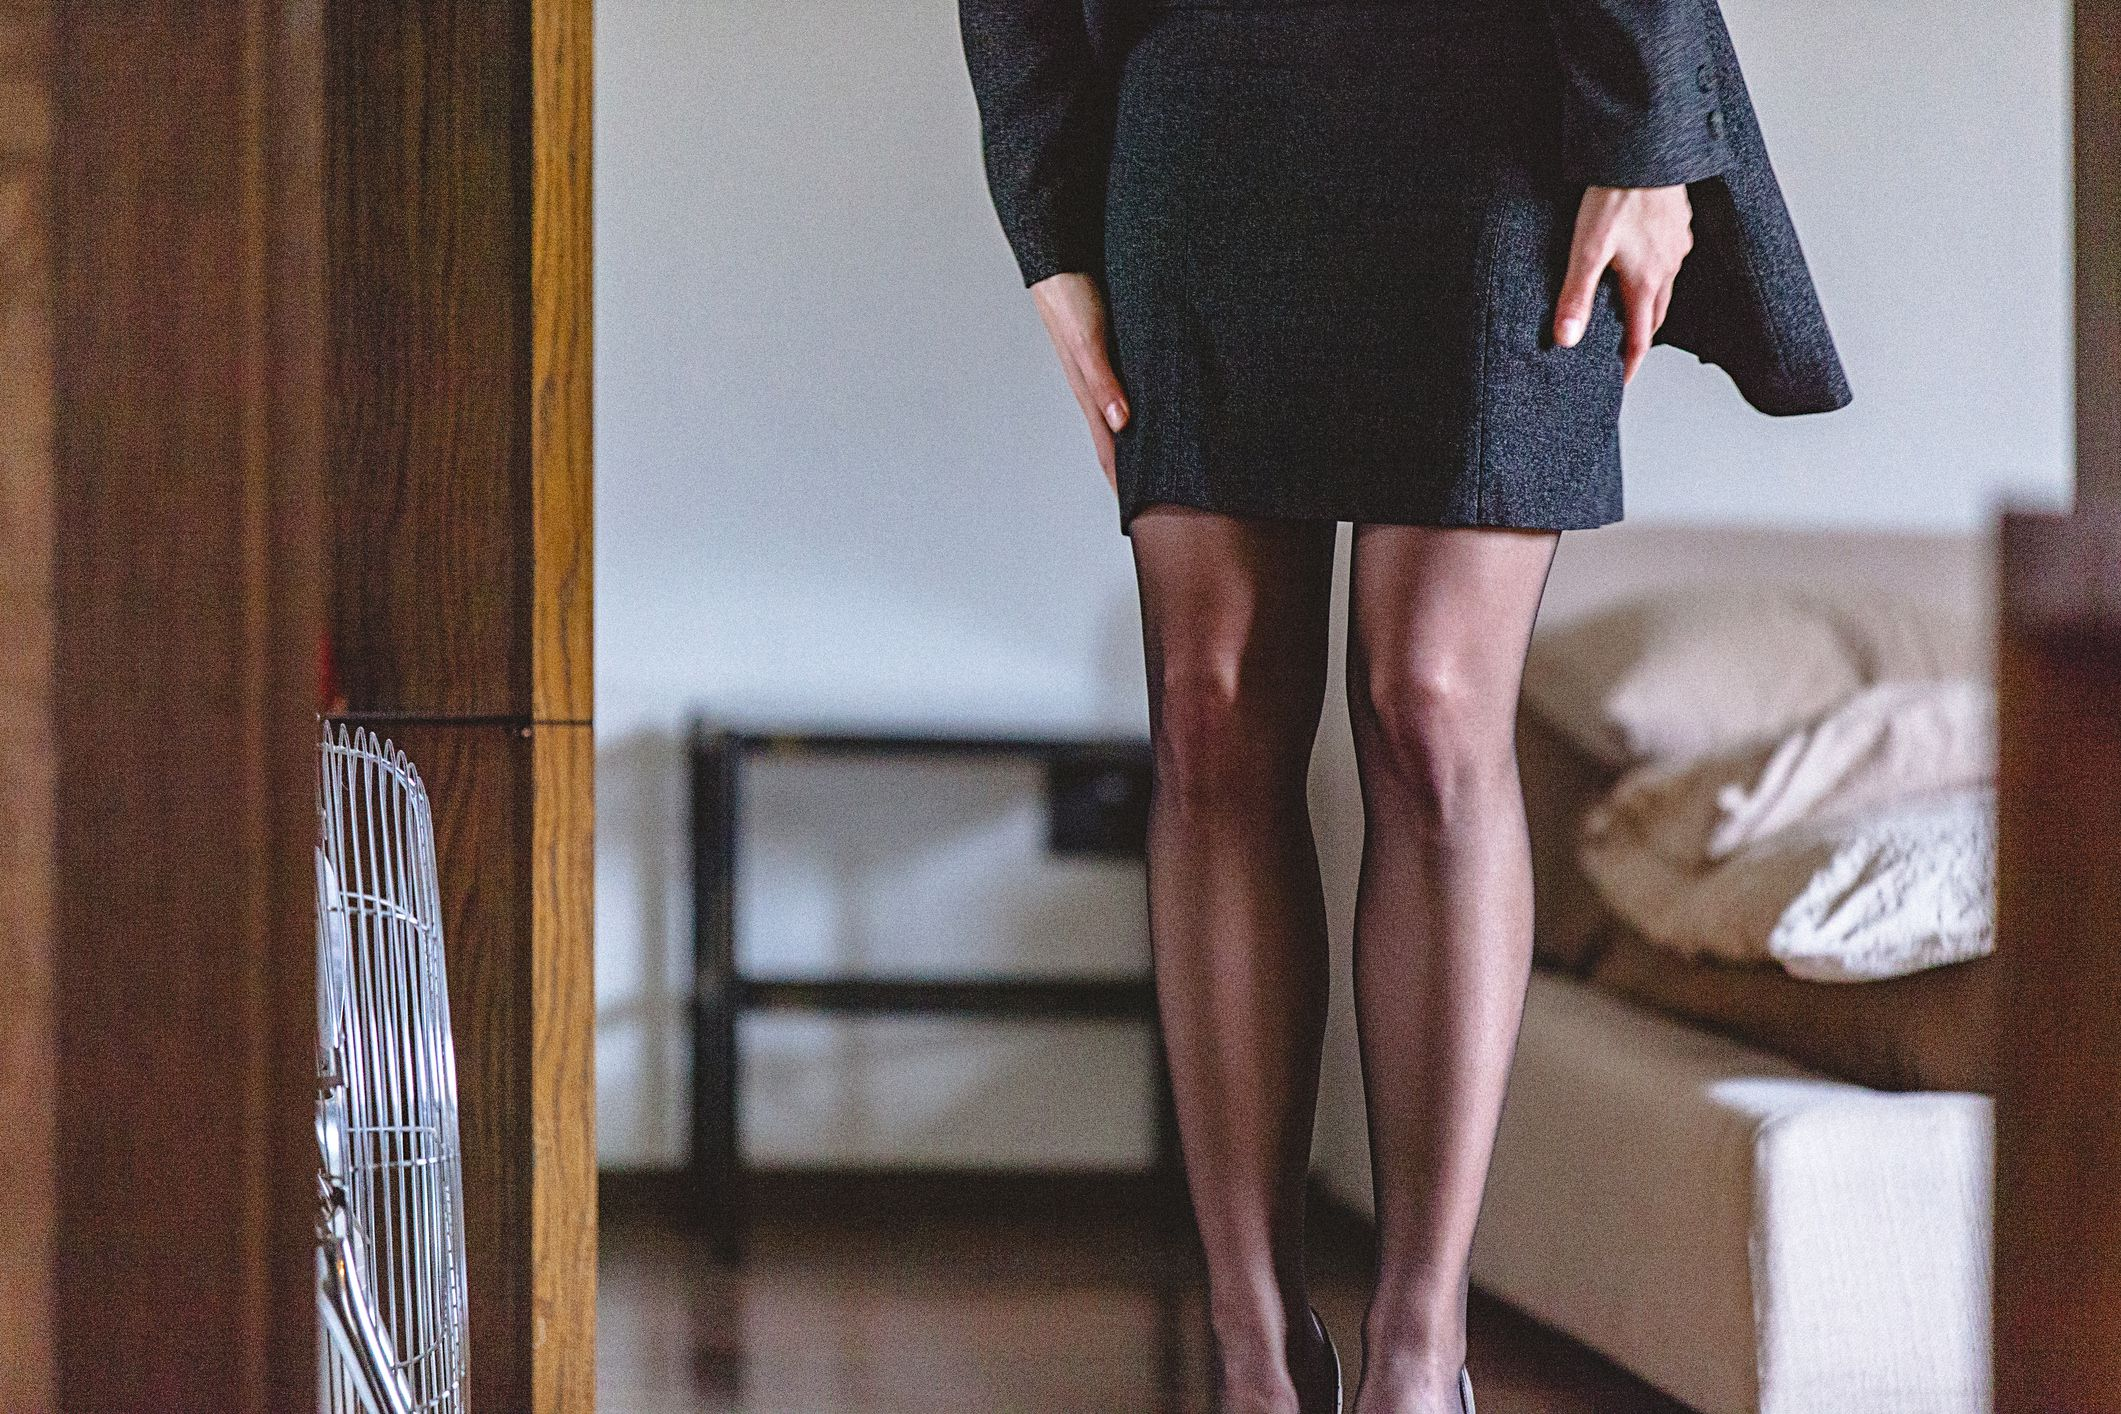 Should You Wear Pantyhose to Job Interviews or Work?